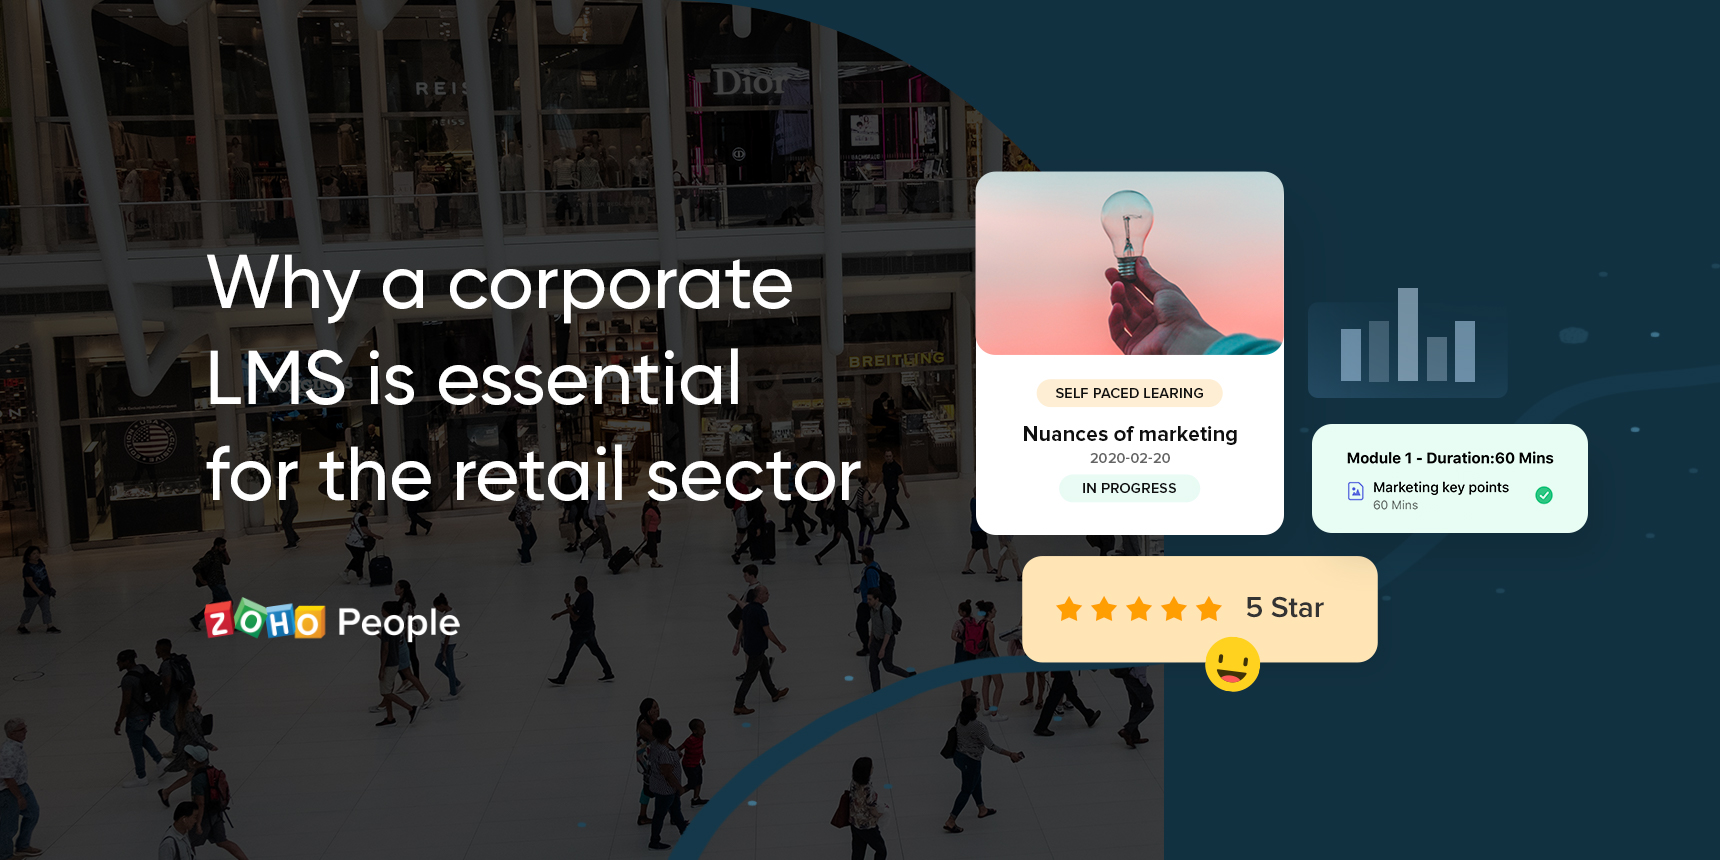 How a corporate LMS benefits the retail sector